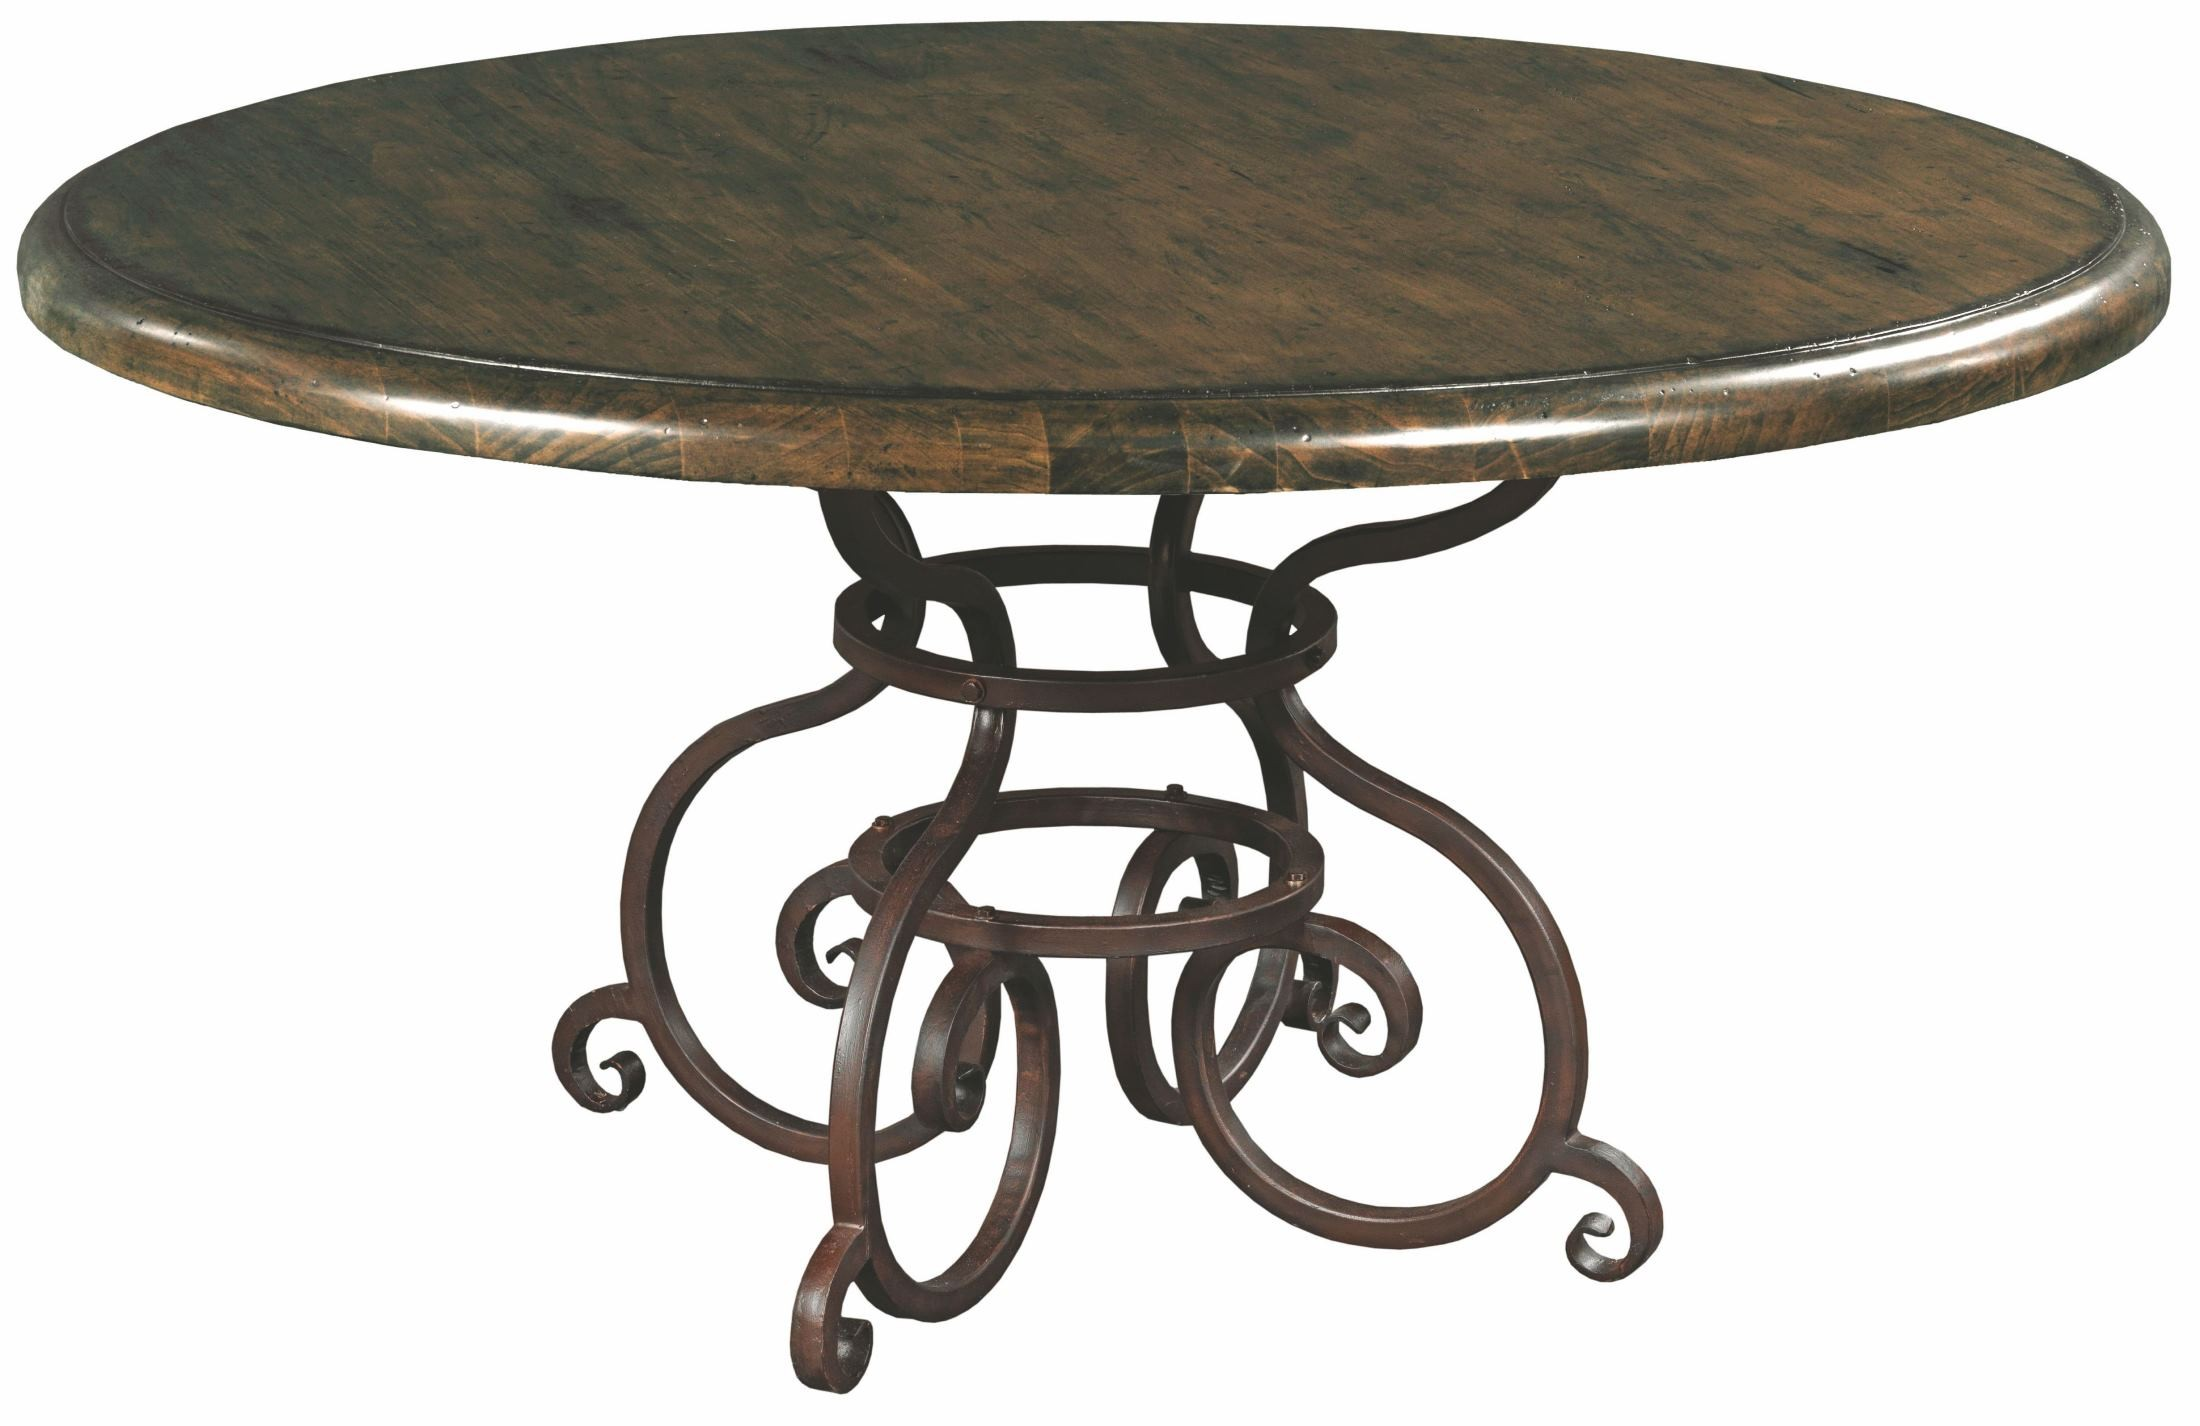 artisans shoppe 60 black forest round dining table with metal base from kincaid 90 2179p. Black Bedroom Furniture Sets. Home Design Ideas